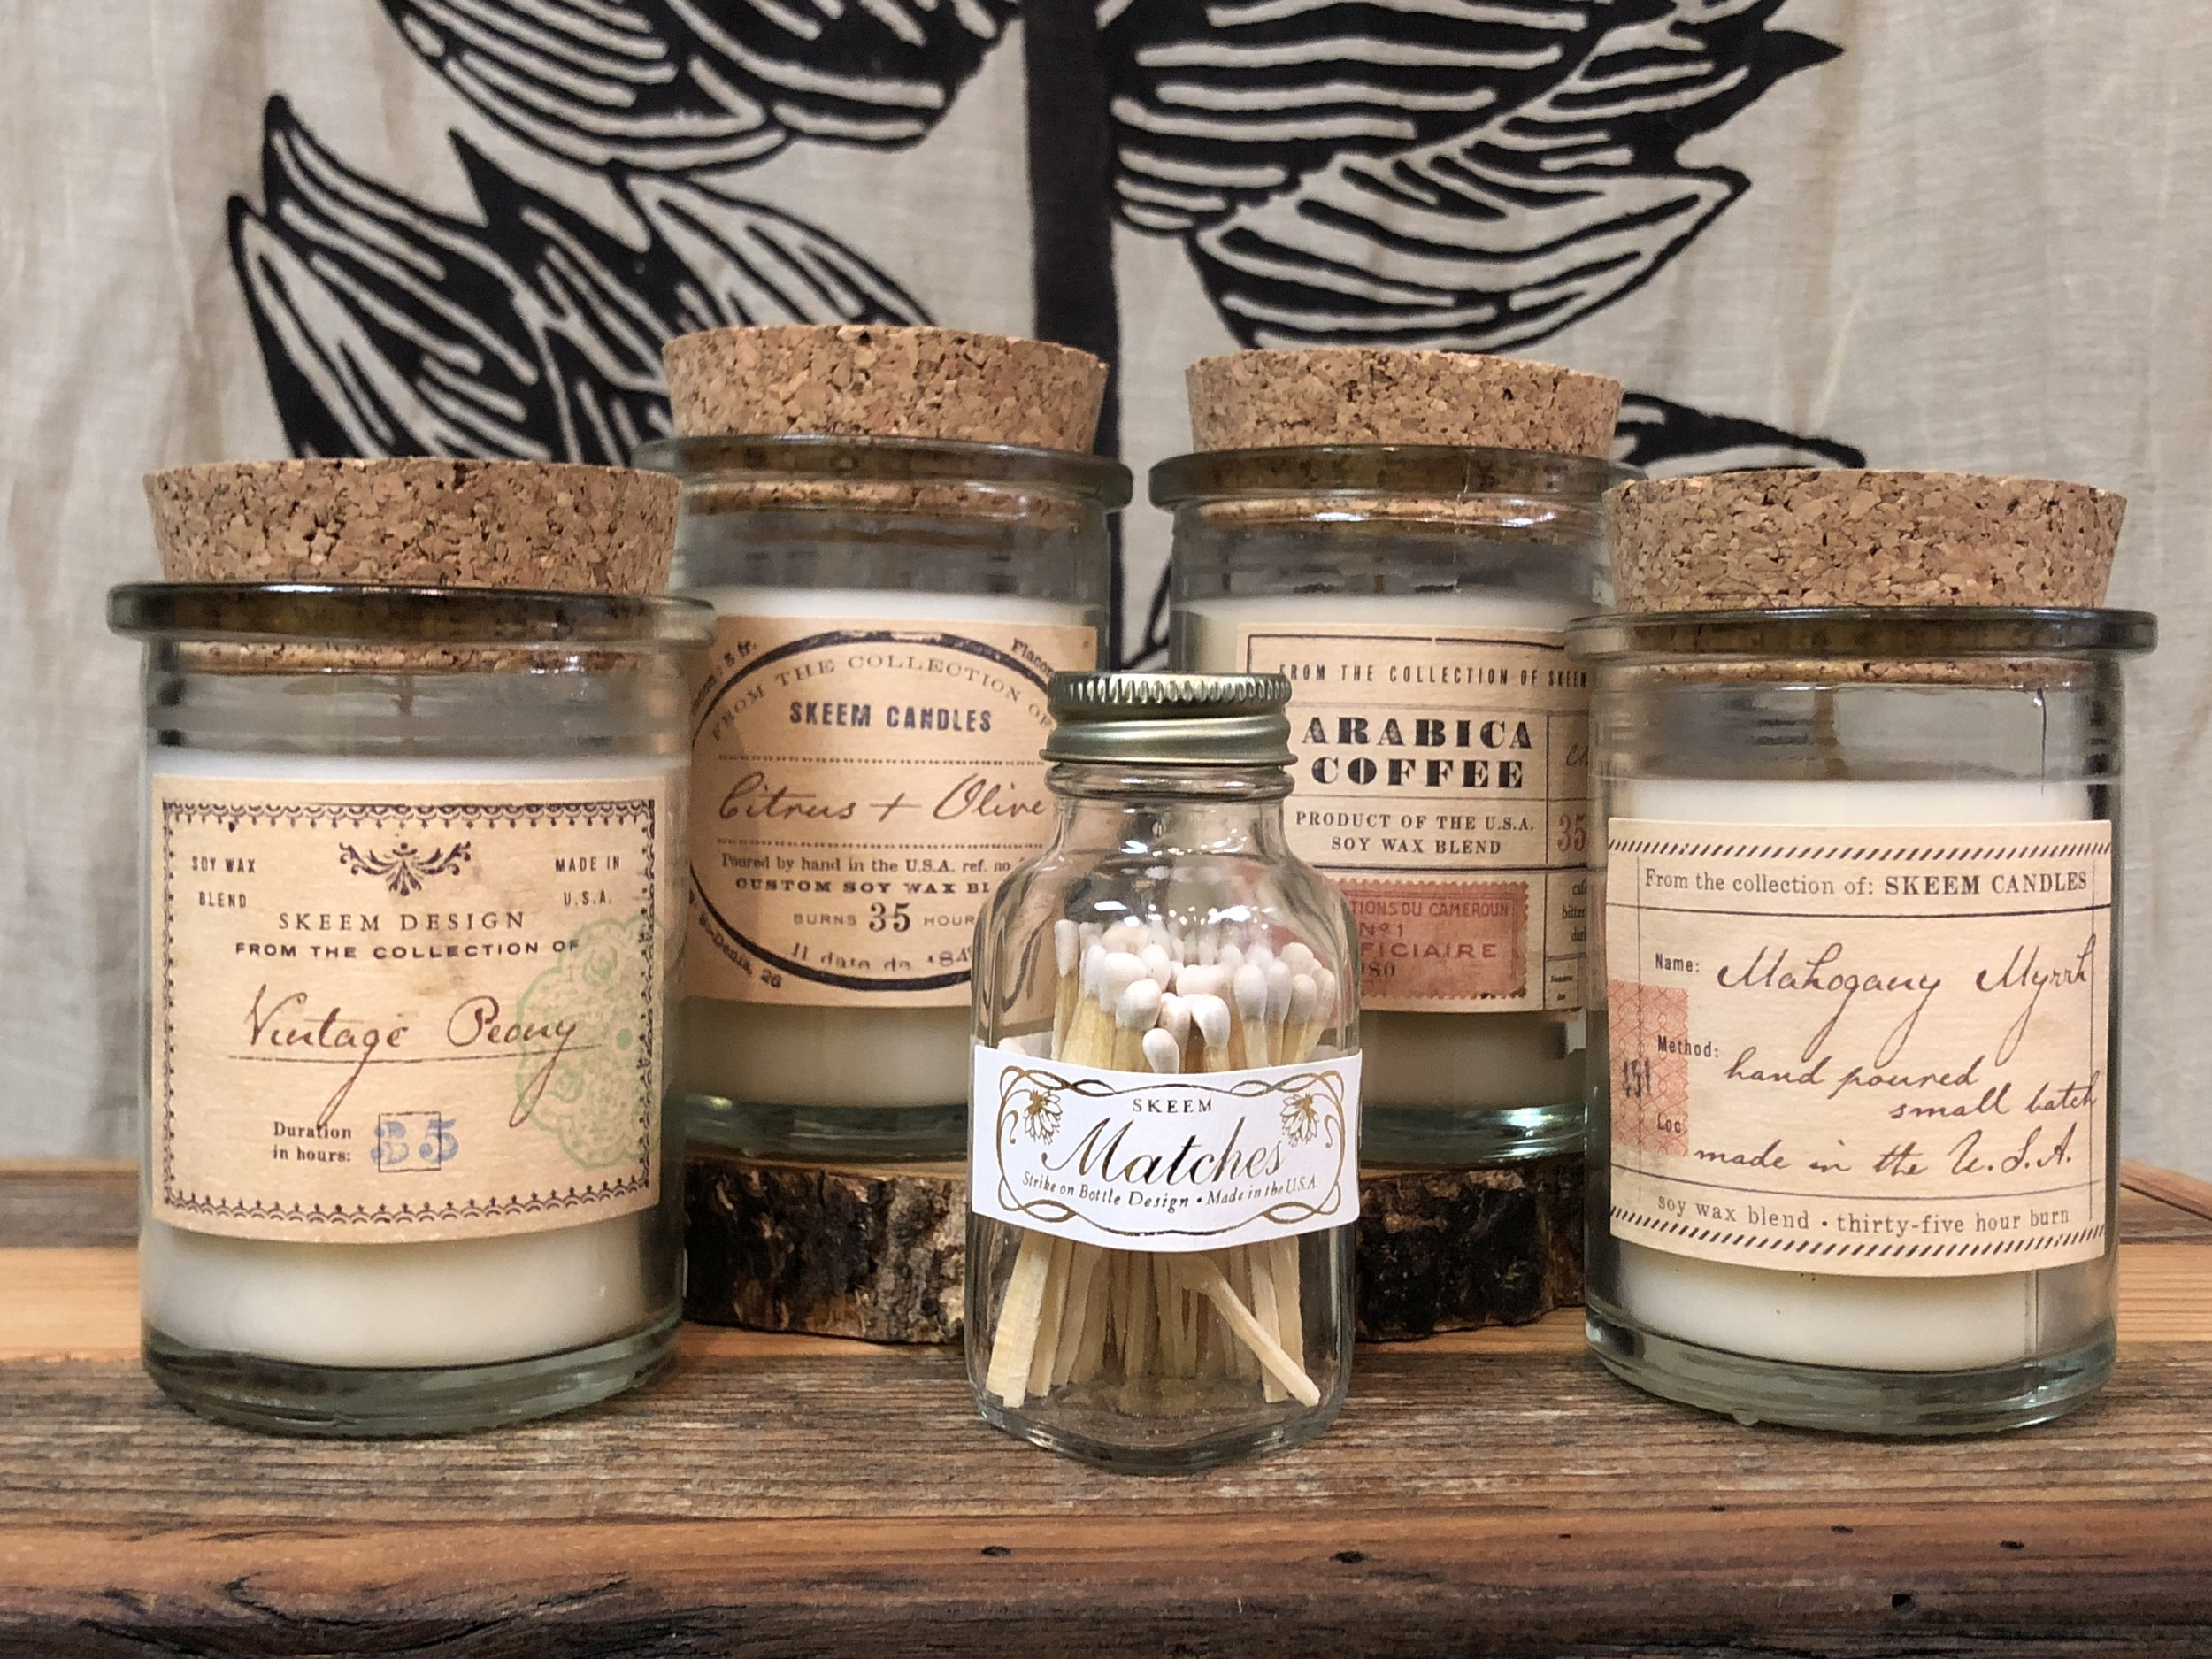 Field Jar Candles and Vintage Matches